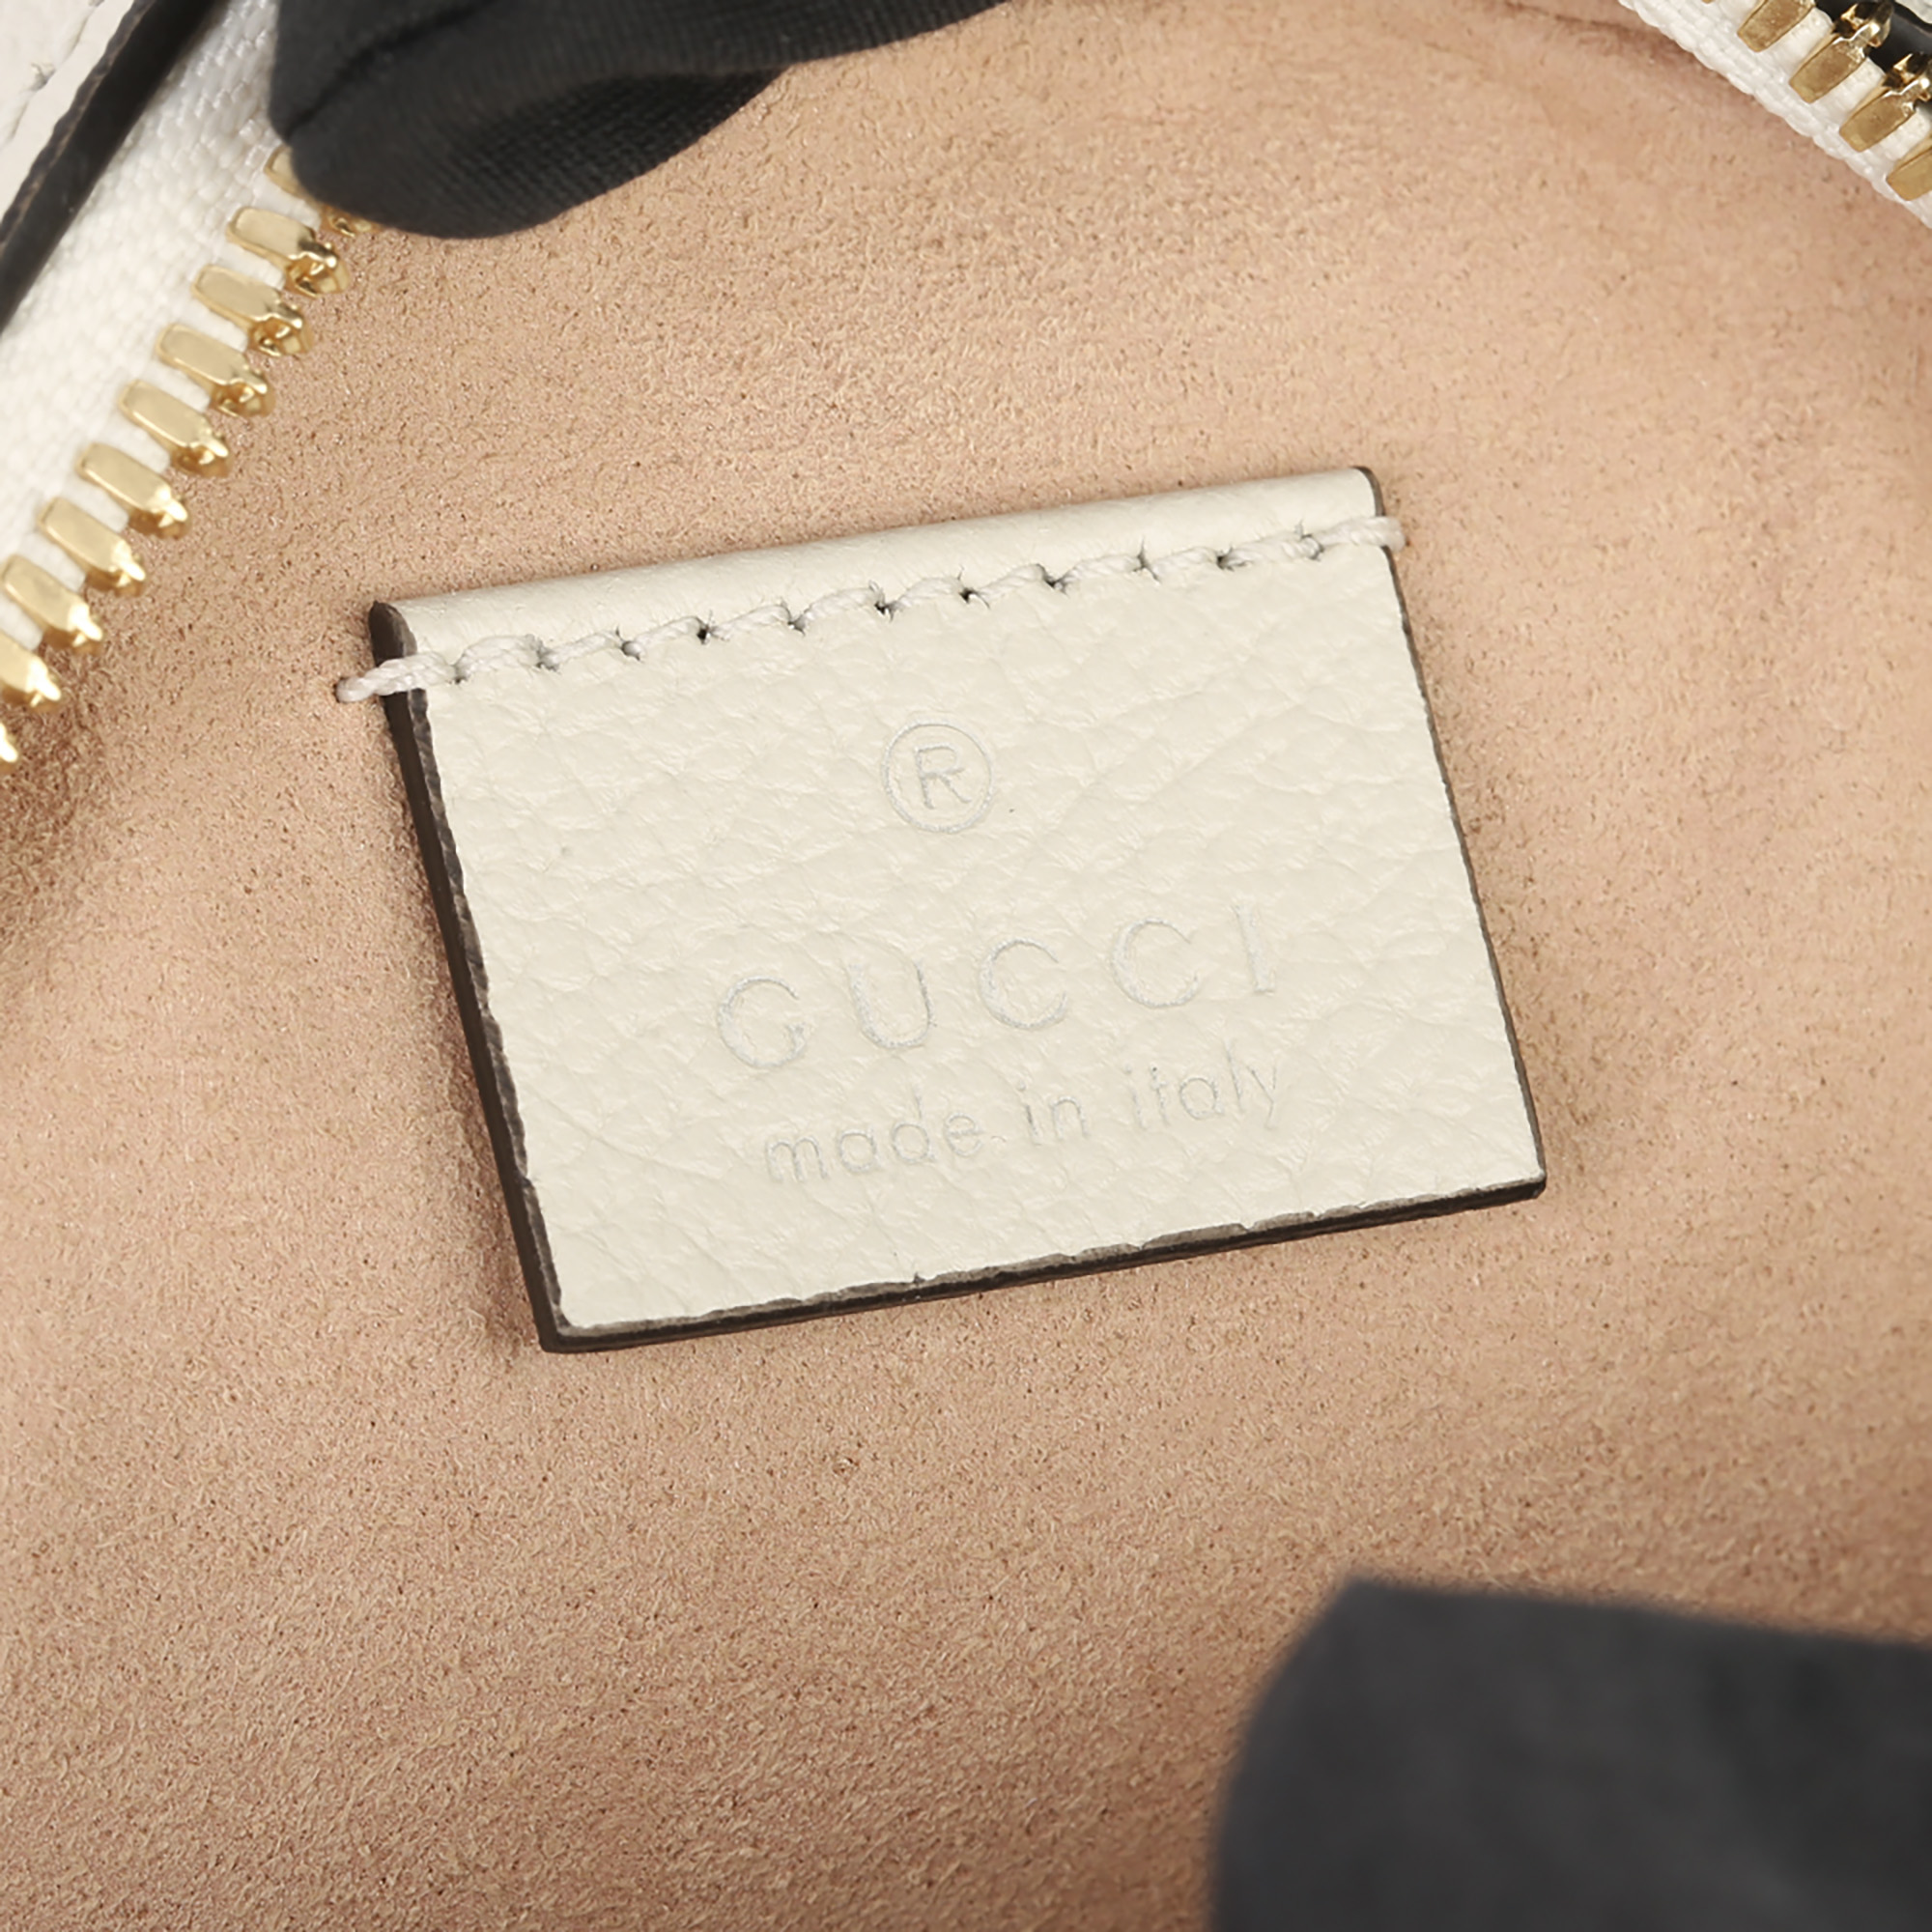 Gucci White Pigskin Leather Web Mini Round Orphidia Shoulder Bag - Image 5 of 11